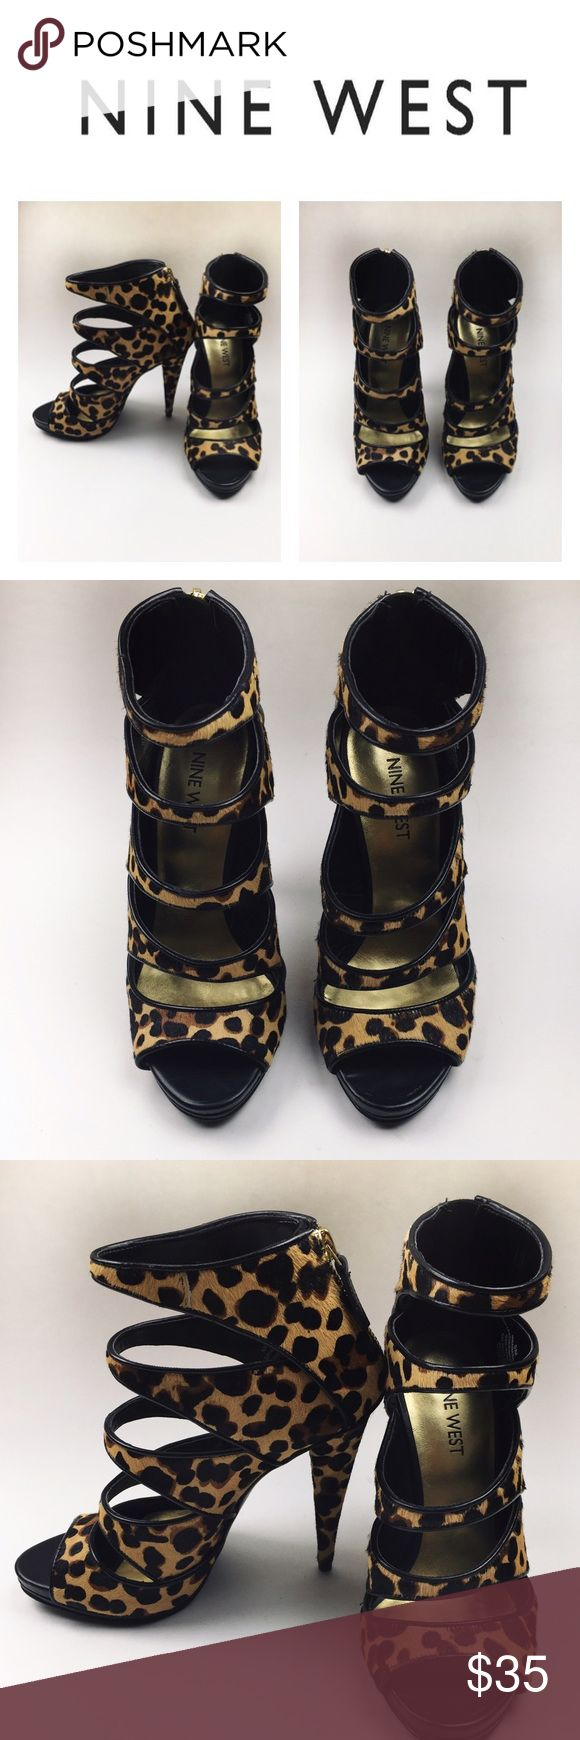 🐆Nine West striped leopard sandal Divine Nine West multi stripes leopard sandal, perfect for any occasion, making you look sexy! It's a new item, comes without box so it might have some handling signs, NEVER WORN size 5.5 Nine West Shoes Sandals